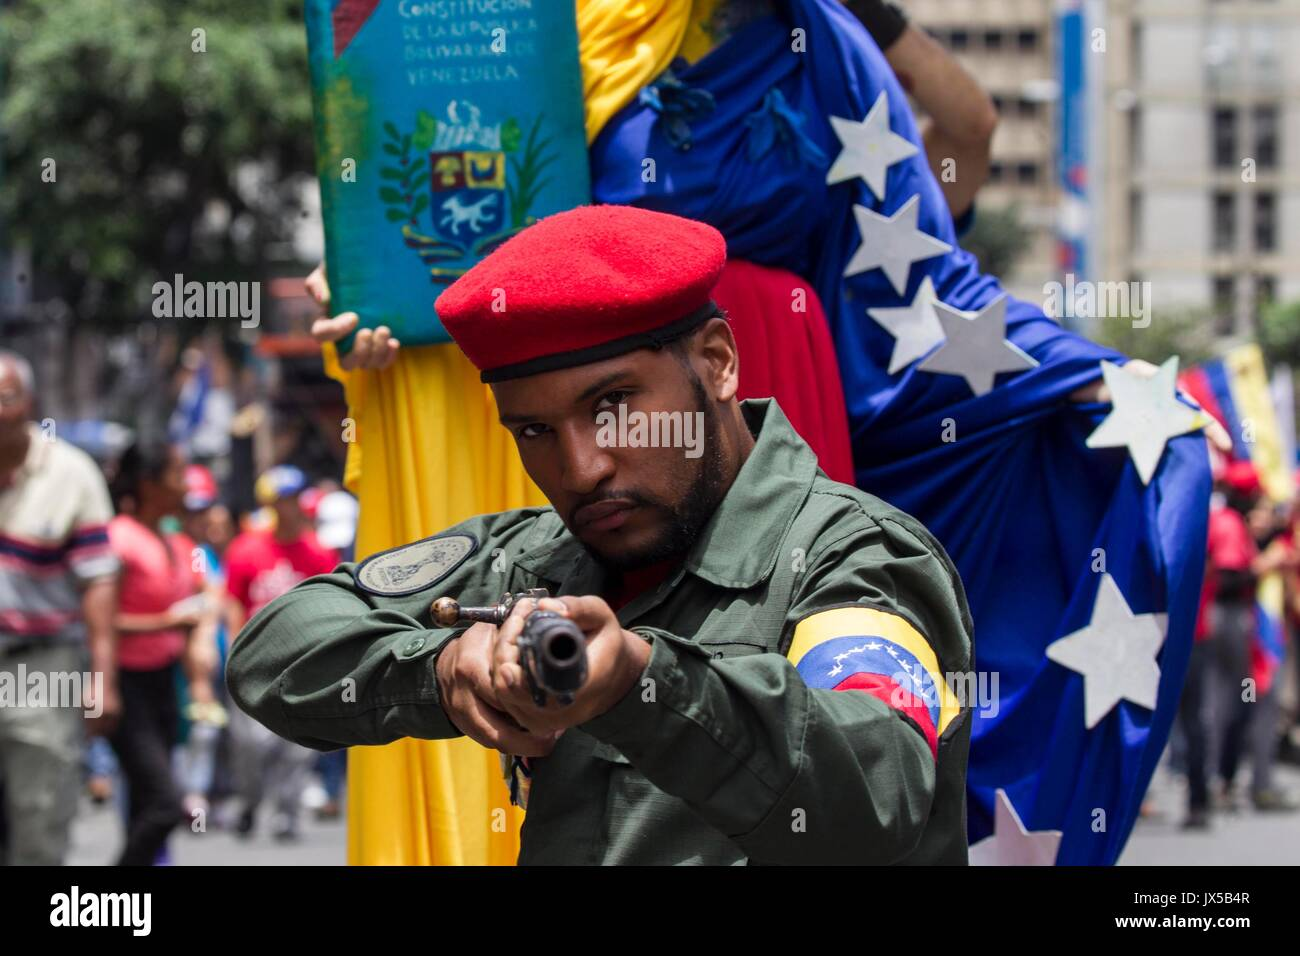 Caracas, Venezuela. 14th Aug, 2017. A man participate in an 'anti-imperialist' march in  Venezuelan President Nicolas Maduro asked that the 'homeland sellers' have asked for an intervention in the country and have supported the 'US' threat be prosecuted by the National Constituent Assembly. EFE/NATHALIE SAYAGO Credit: EFE News Agency/Alamy Live News - Stock Image